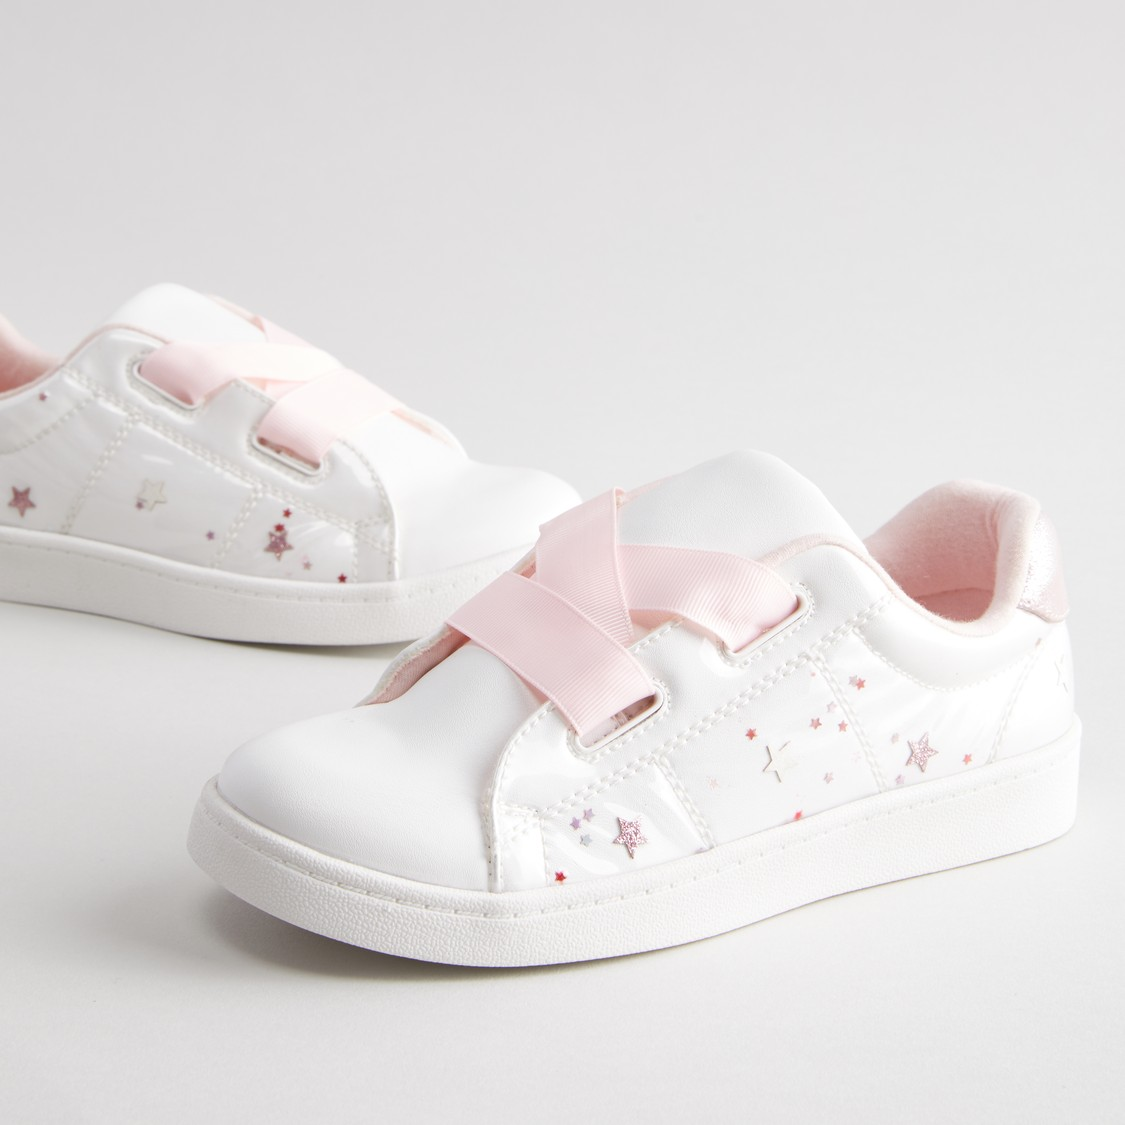 Printed Lace-Up Shoes with Applique Detail